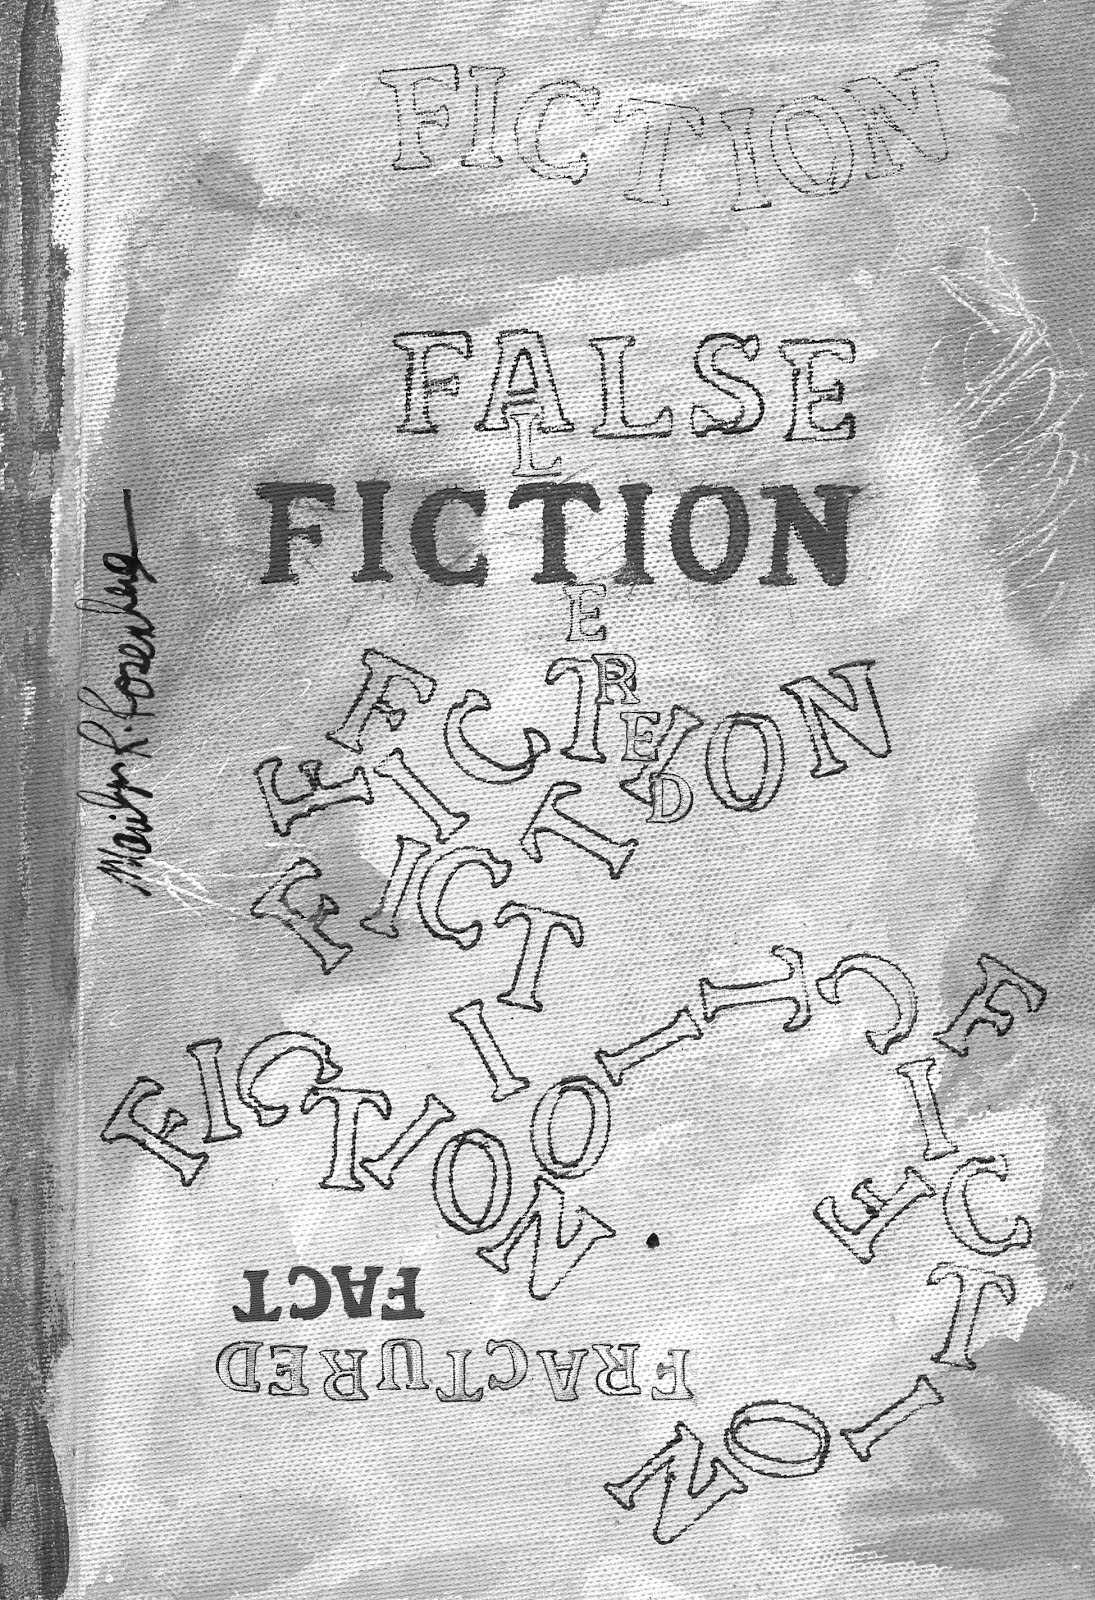 Coming Soon in Winter of 2018/2019!  FALSE FICTION FRACTURED FACT ALTERED by Marilyn R. Rosenberg